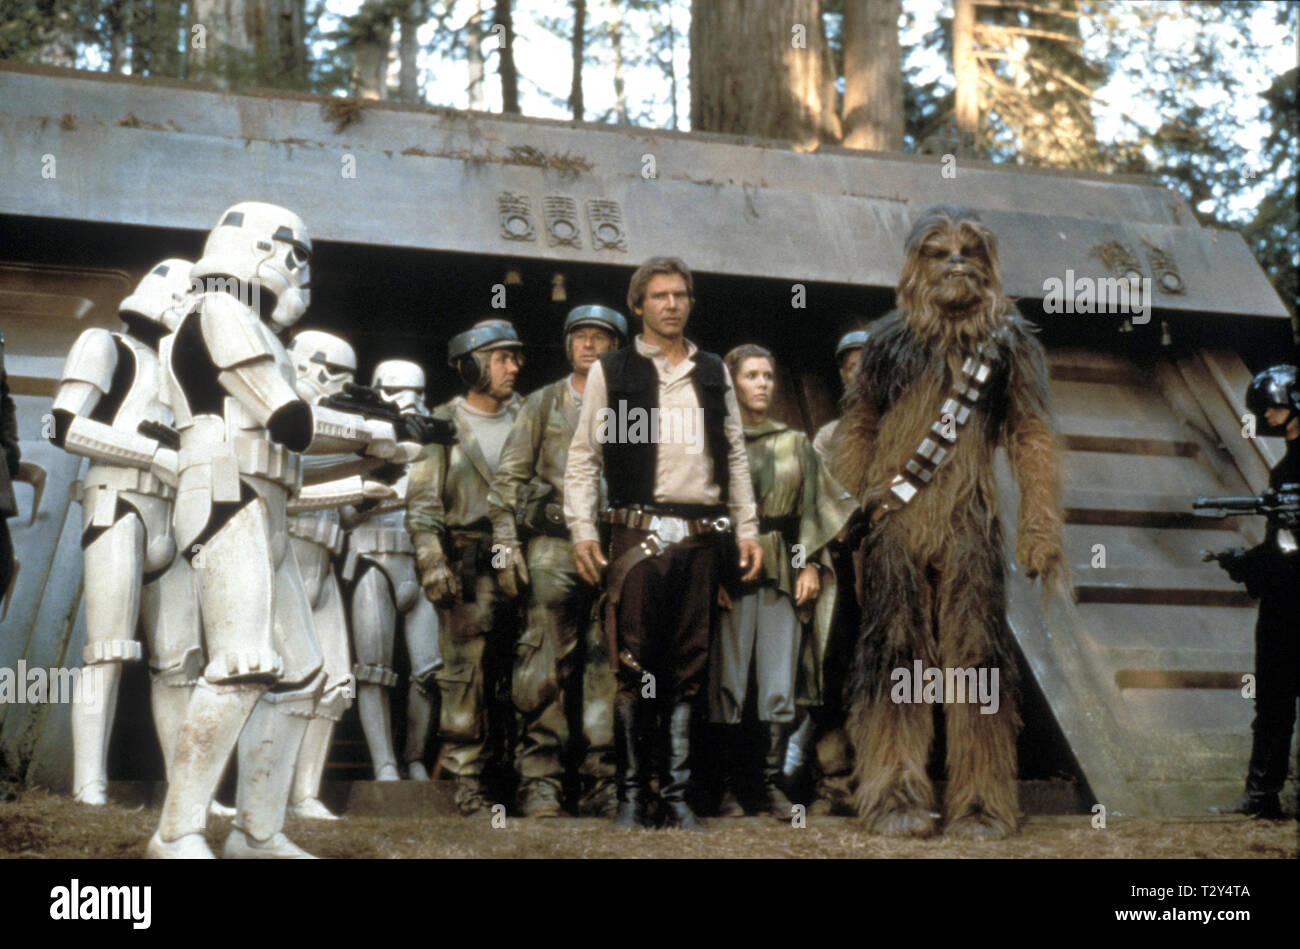 STAR WARS: EPISODE VI - RETURN OF THE JEDI, HARRISON FORD, CARRIE FISHER , PETER MAYHEW, 1983 - Stock Image